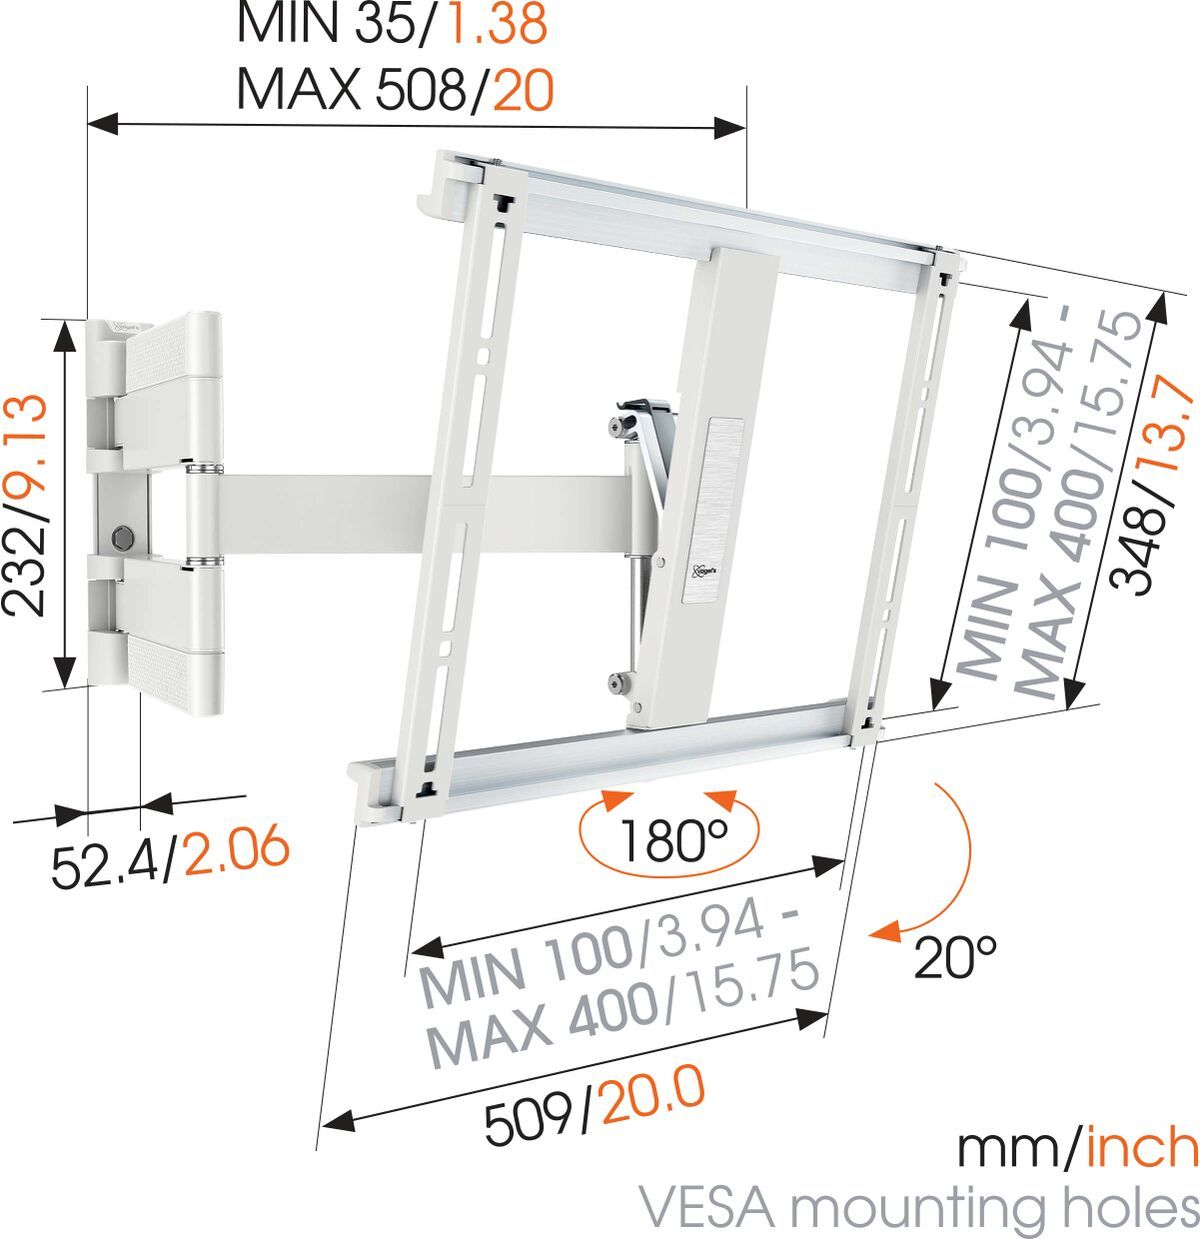 Vogel's THIN 445 ExtraThin Full-Motion TV Wall Mount (white) - Suitable for 26 up to 55 inch TVs - Full motion (up to 180°) - Tilt up to 20° - Dimensions